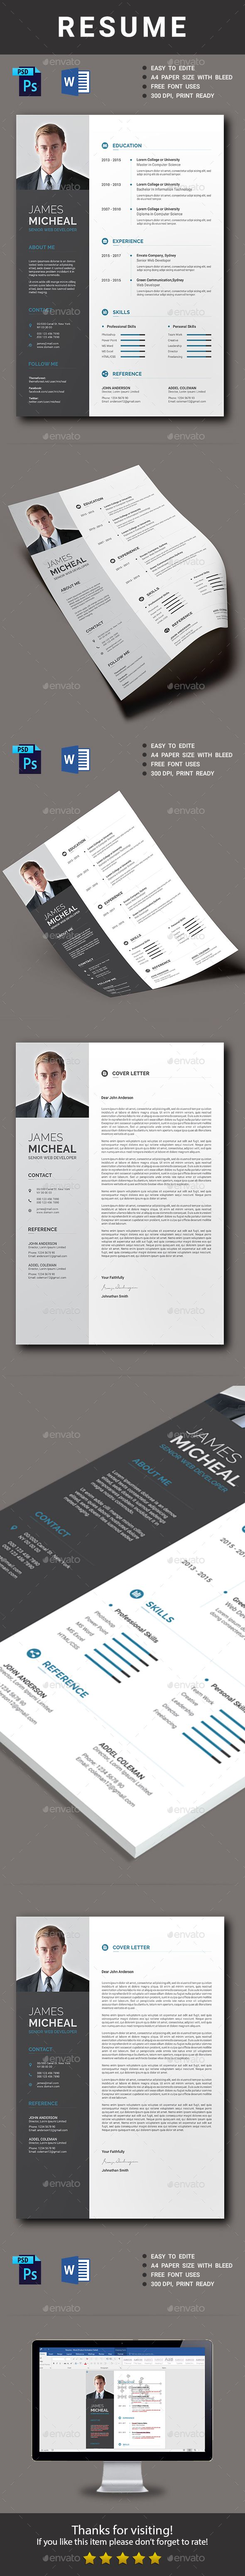 receptionist sample resume%0A Resume